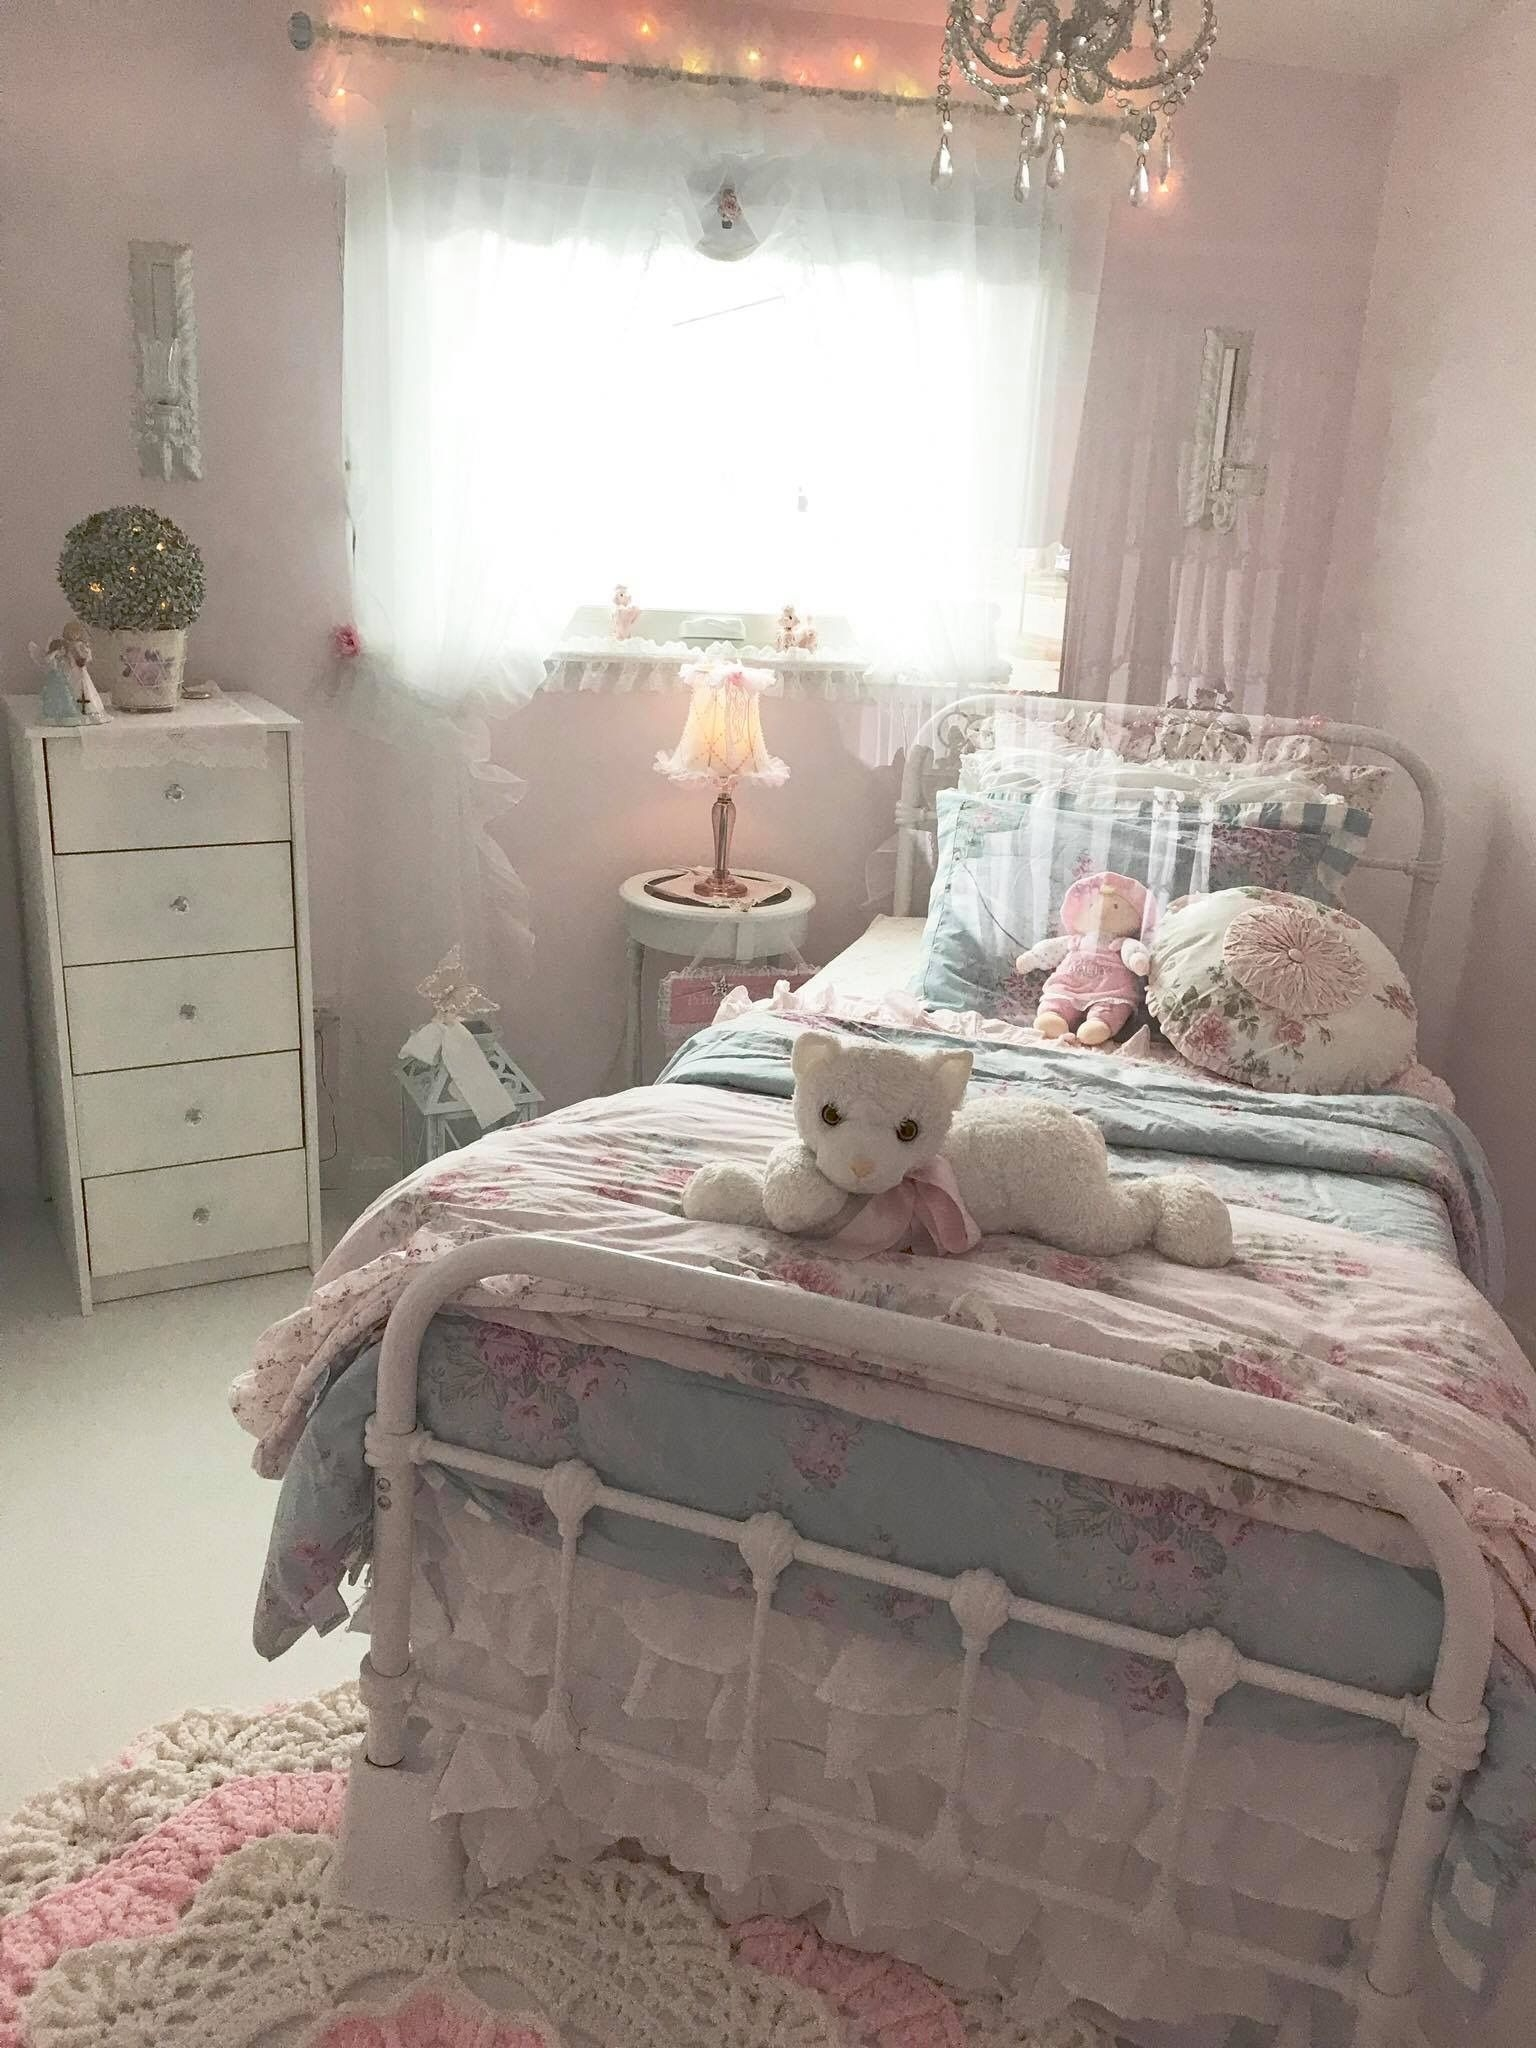 Beauteous Shabby Chic Room Ideas On Engaging Shabby Chic On Shabby Chic Room Ideas